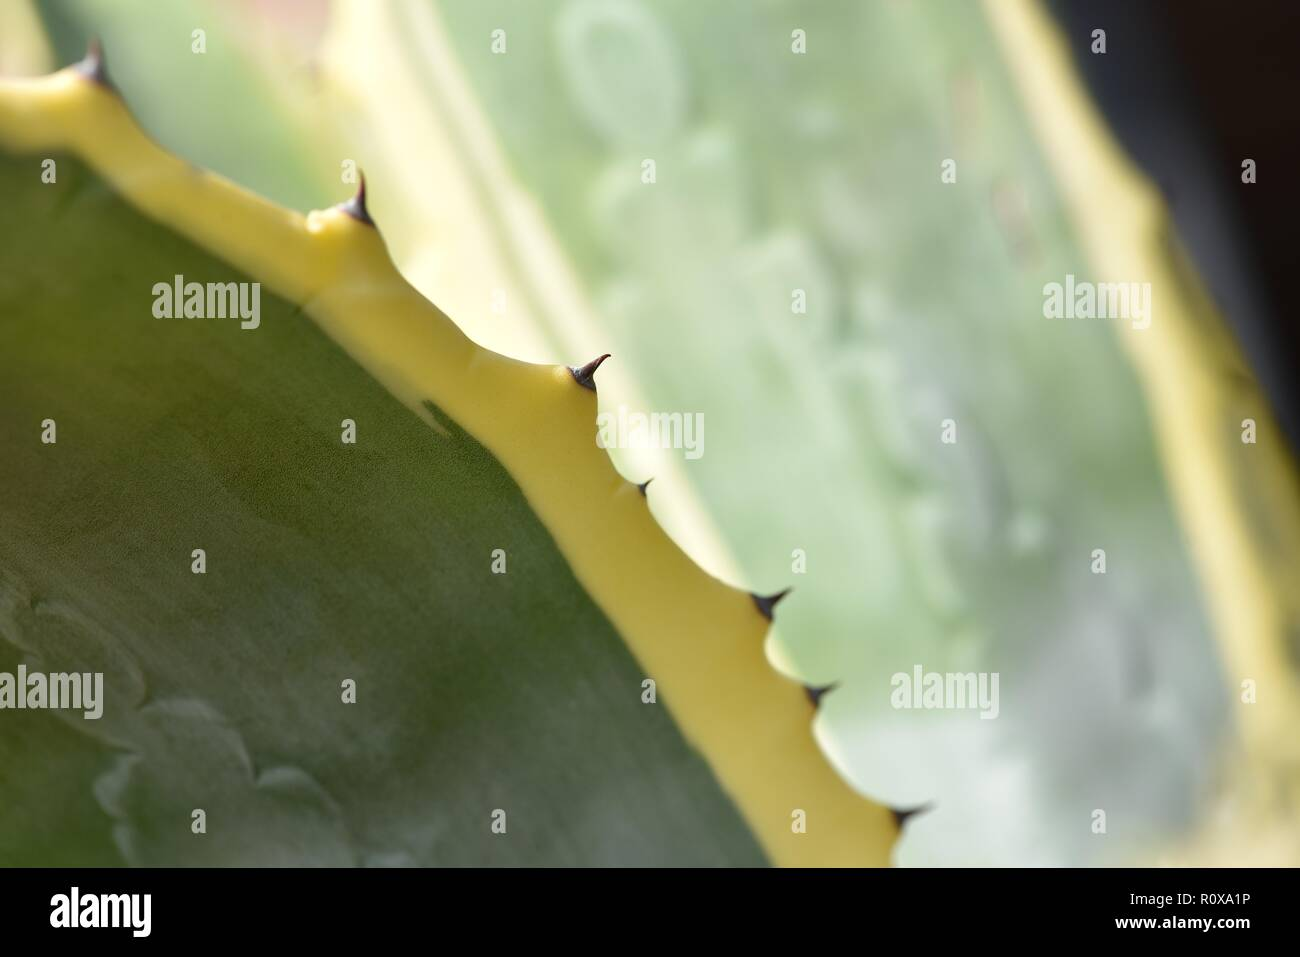 Agave americana variegata: a detail of tips of the leaves of an Agave plant - Stock Image